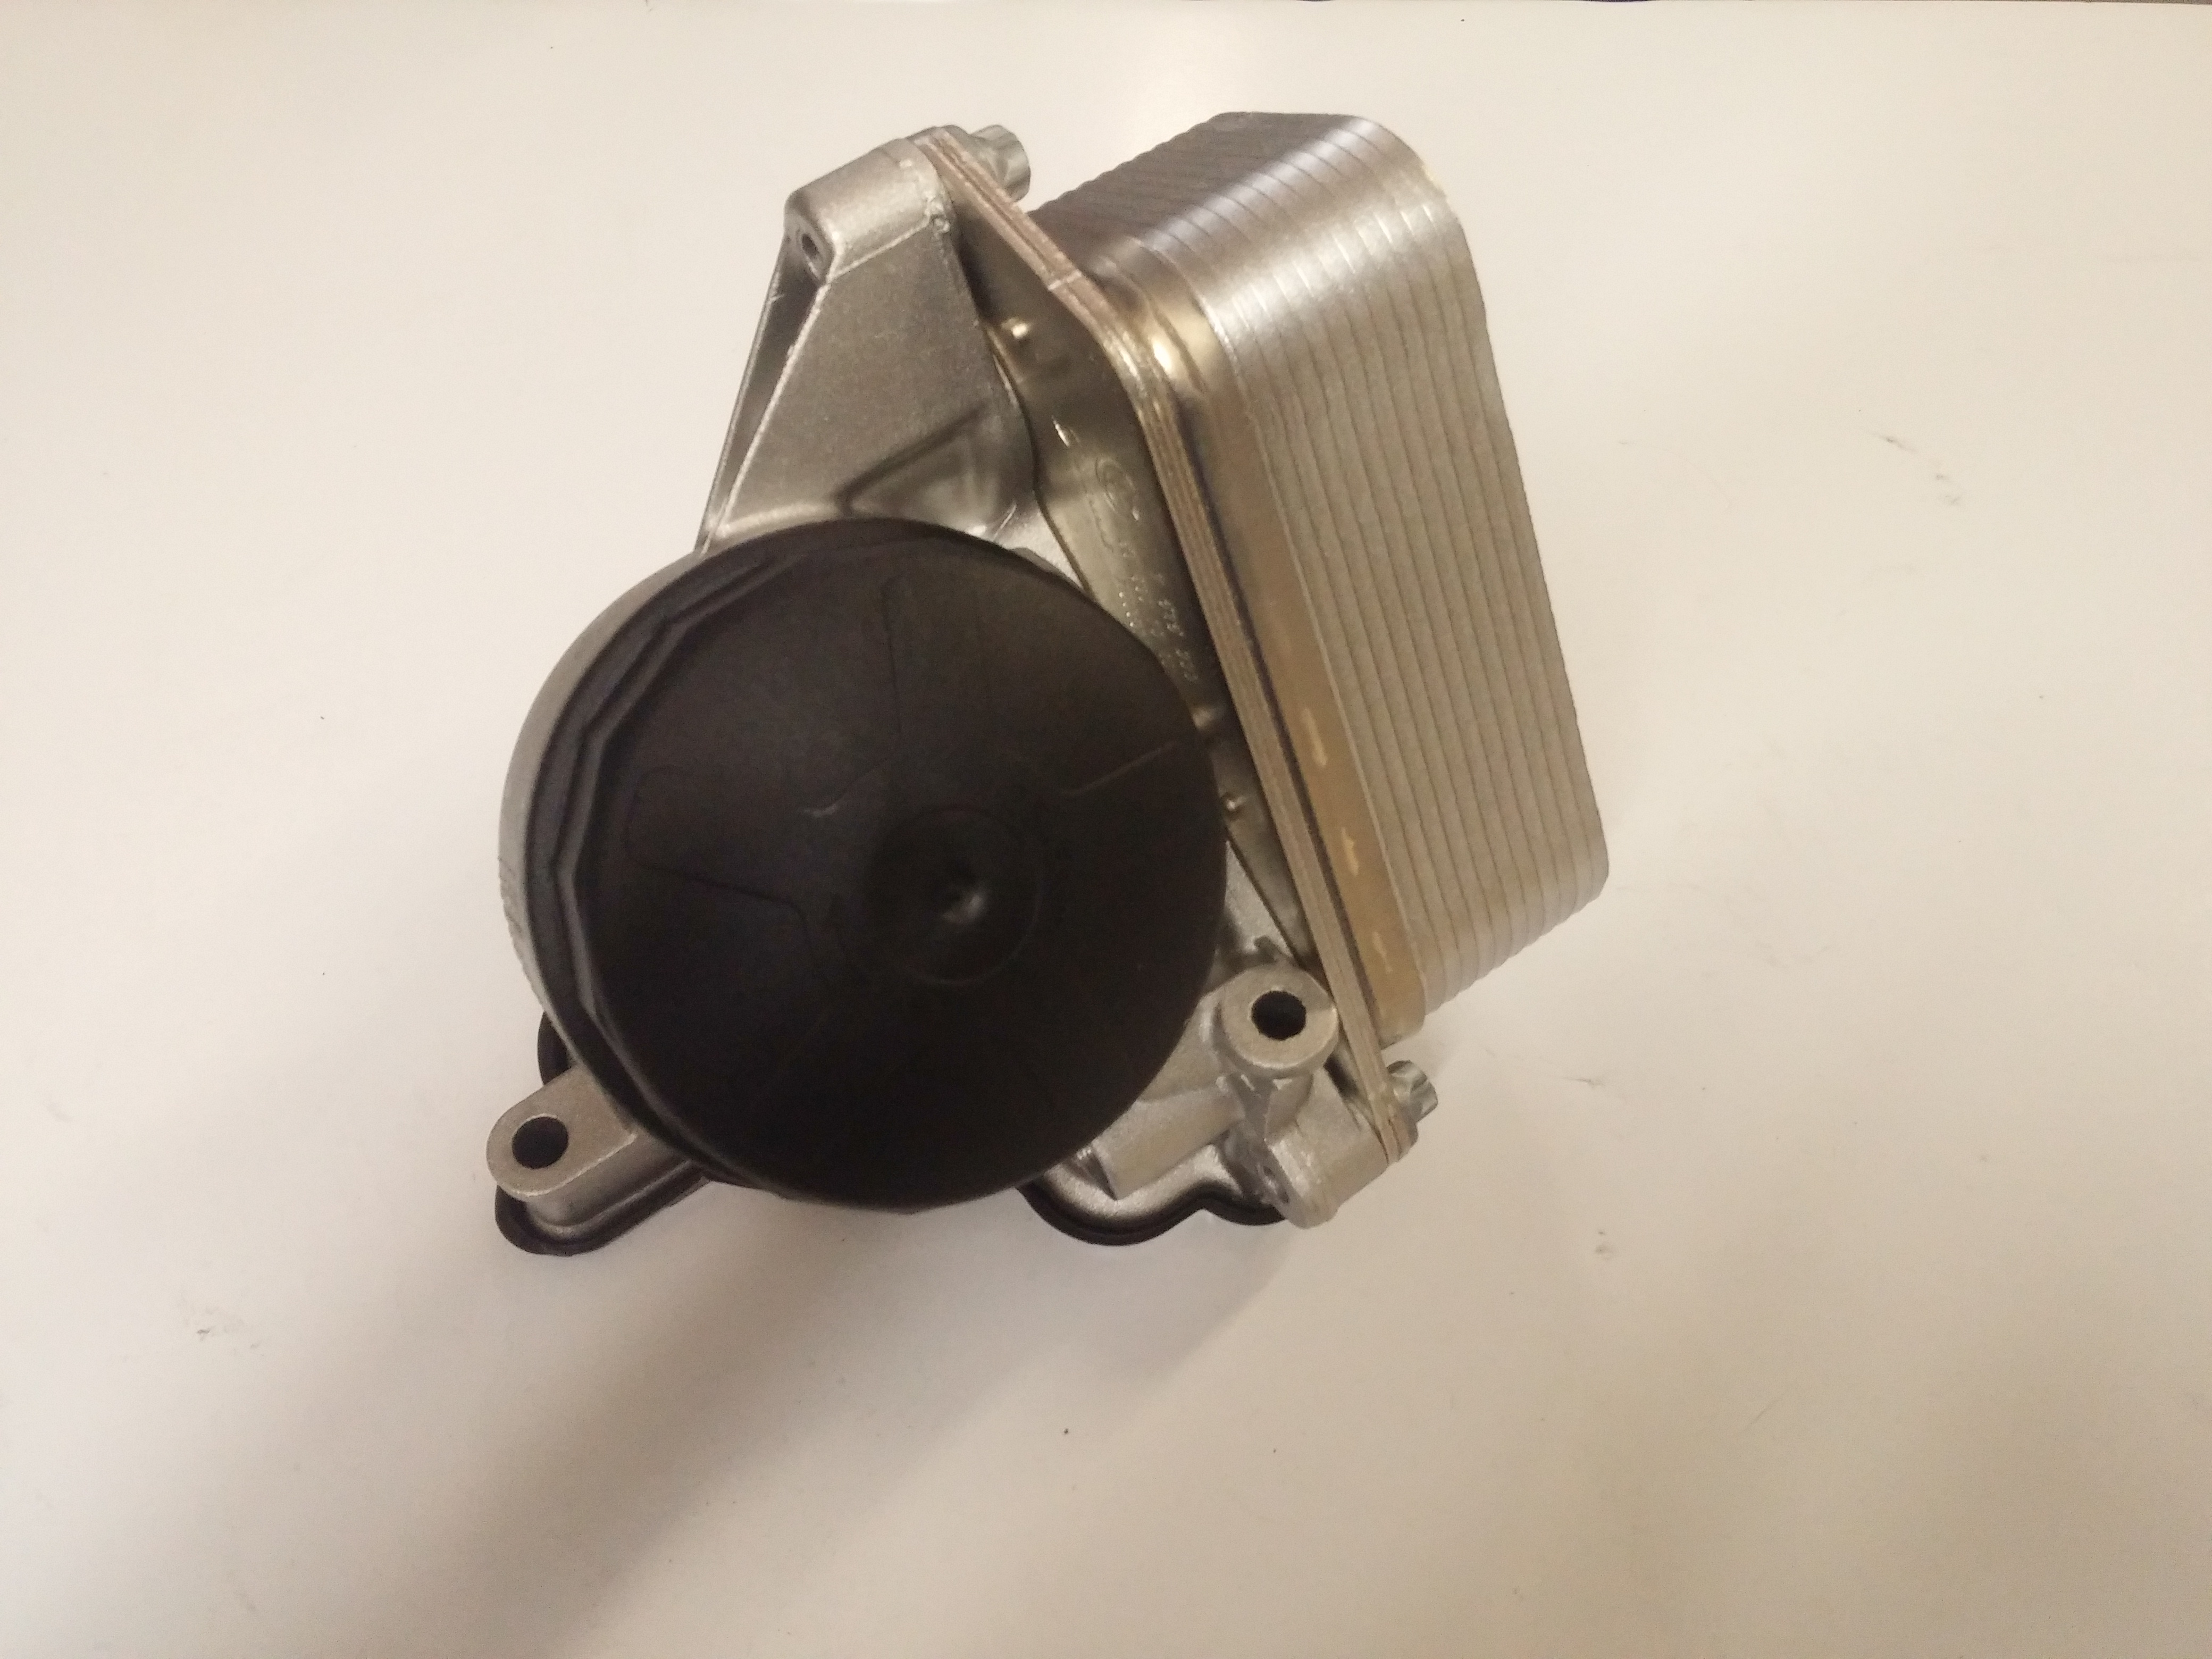 Showthread as well Topic73199  pact   Pollenfilter Microfiltertauschanleitung 3er BMW   E36 as well Pollenfilter T4740251 also 2016 Bmw X1 Suv Savannah furthermore 11428637820. on filter for bmw x3